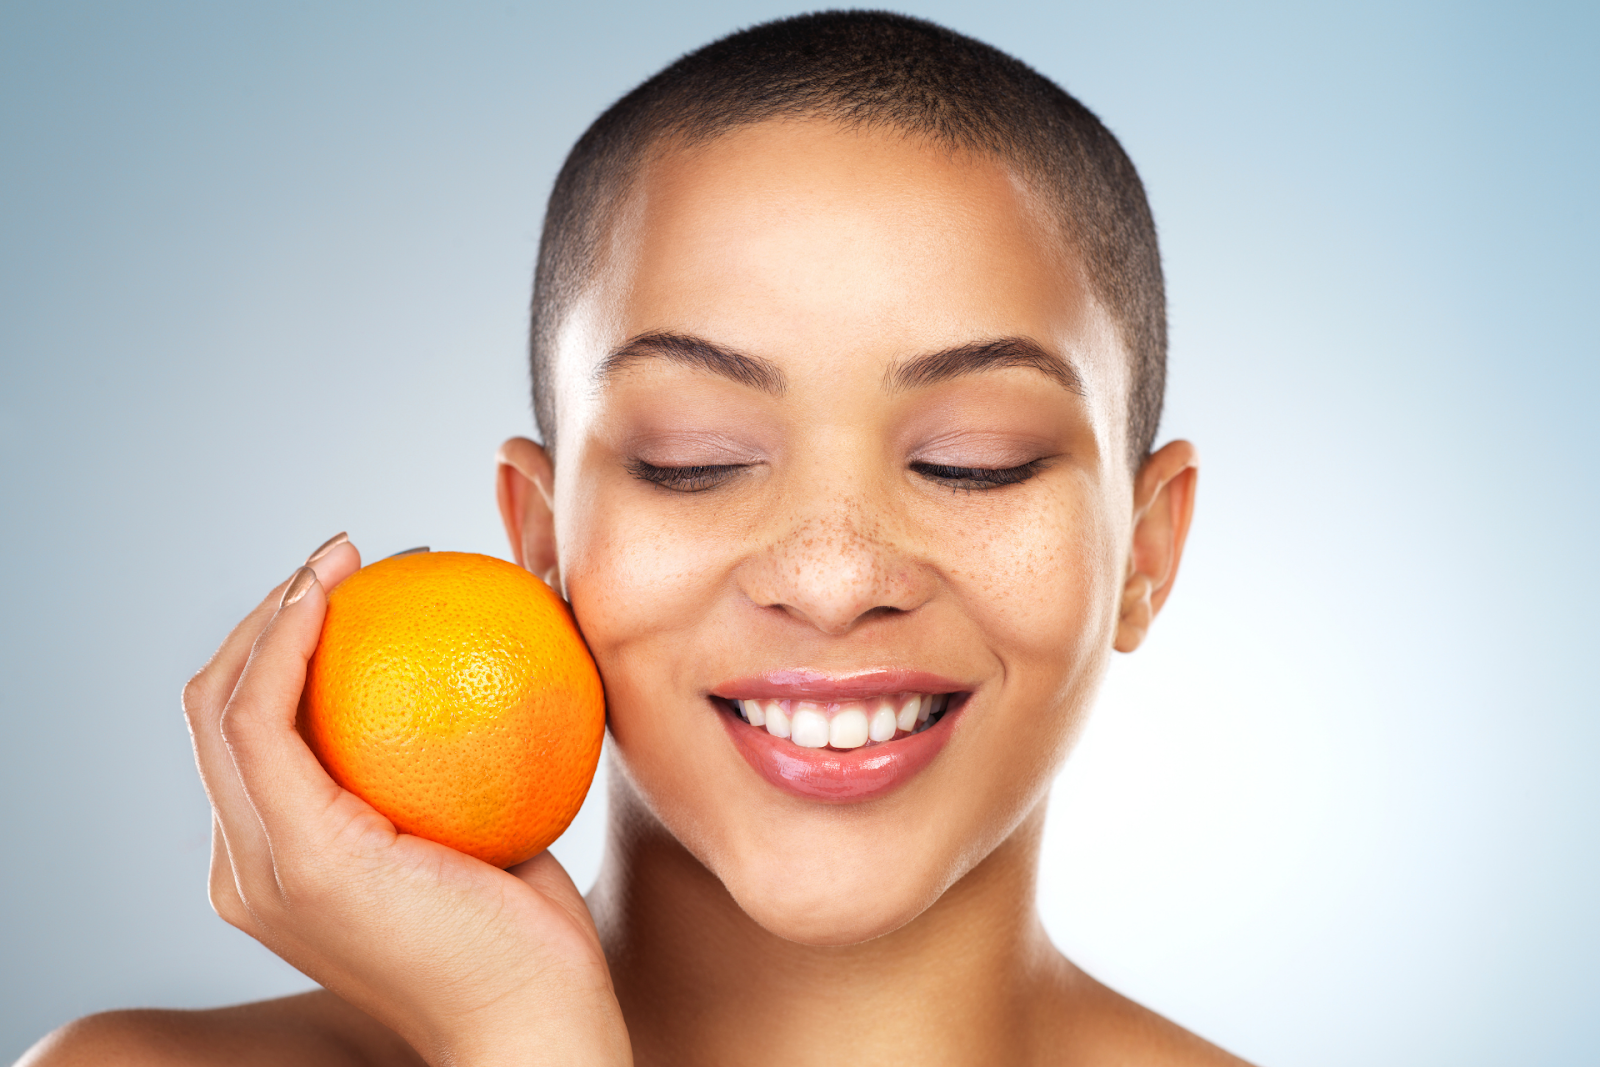 A woman with bright skin holding an orange